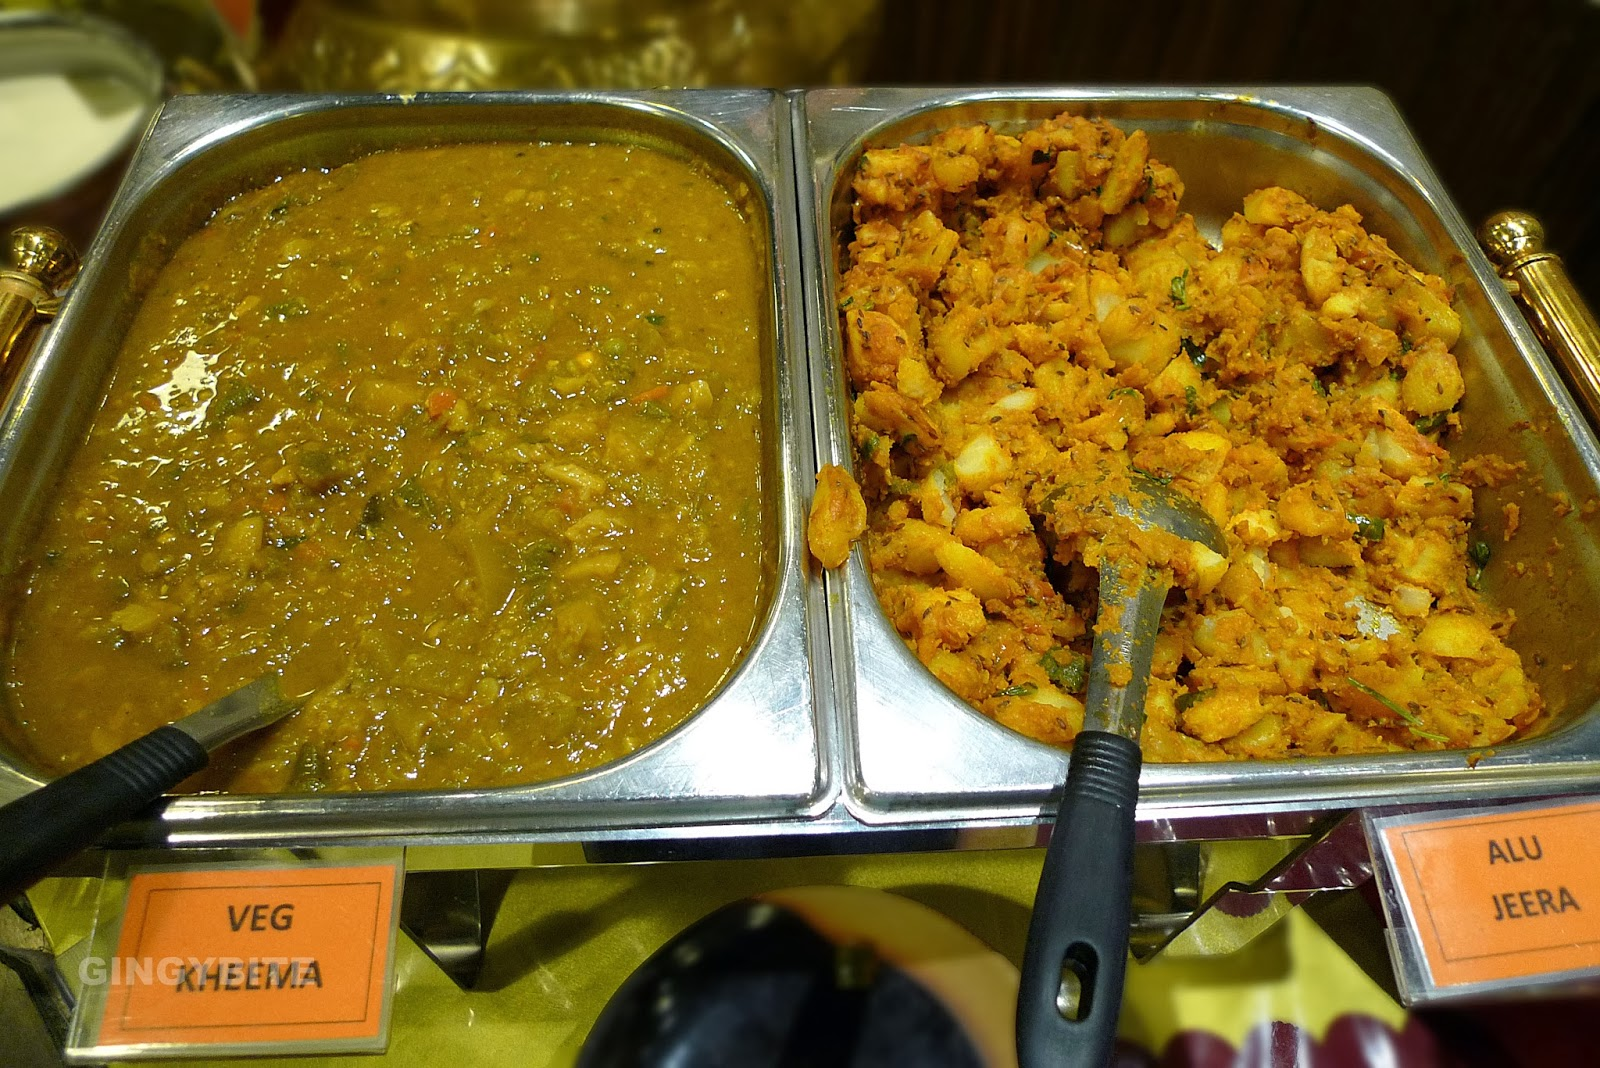 kheema and alu jeera